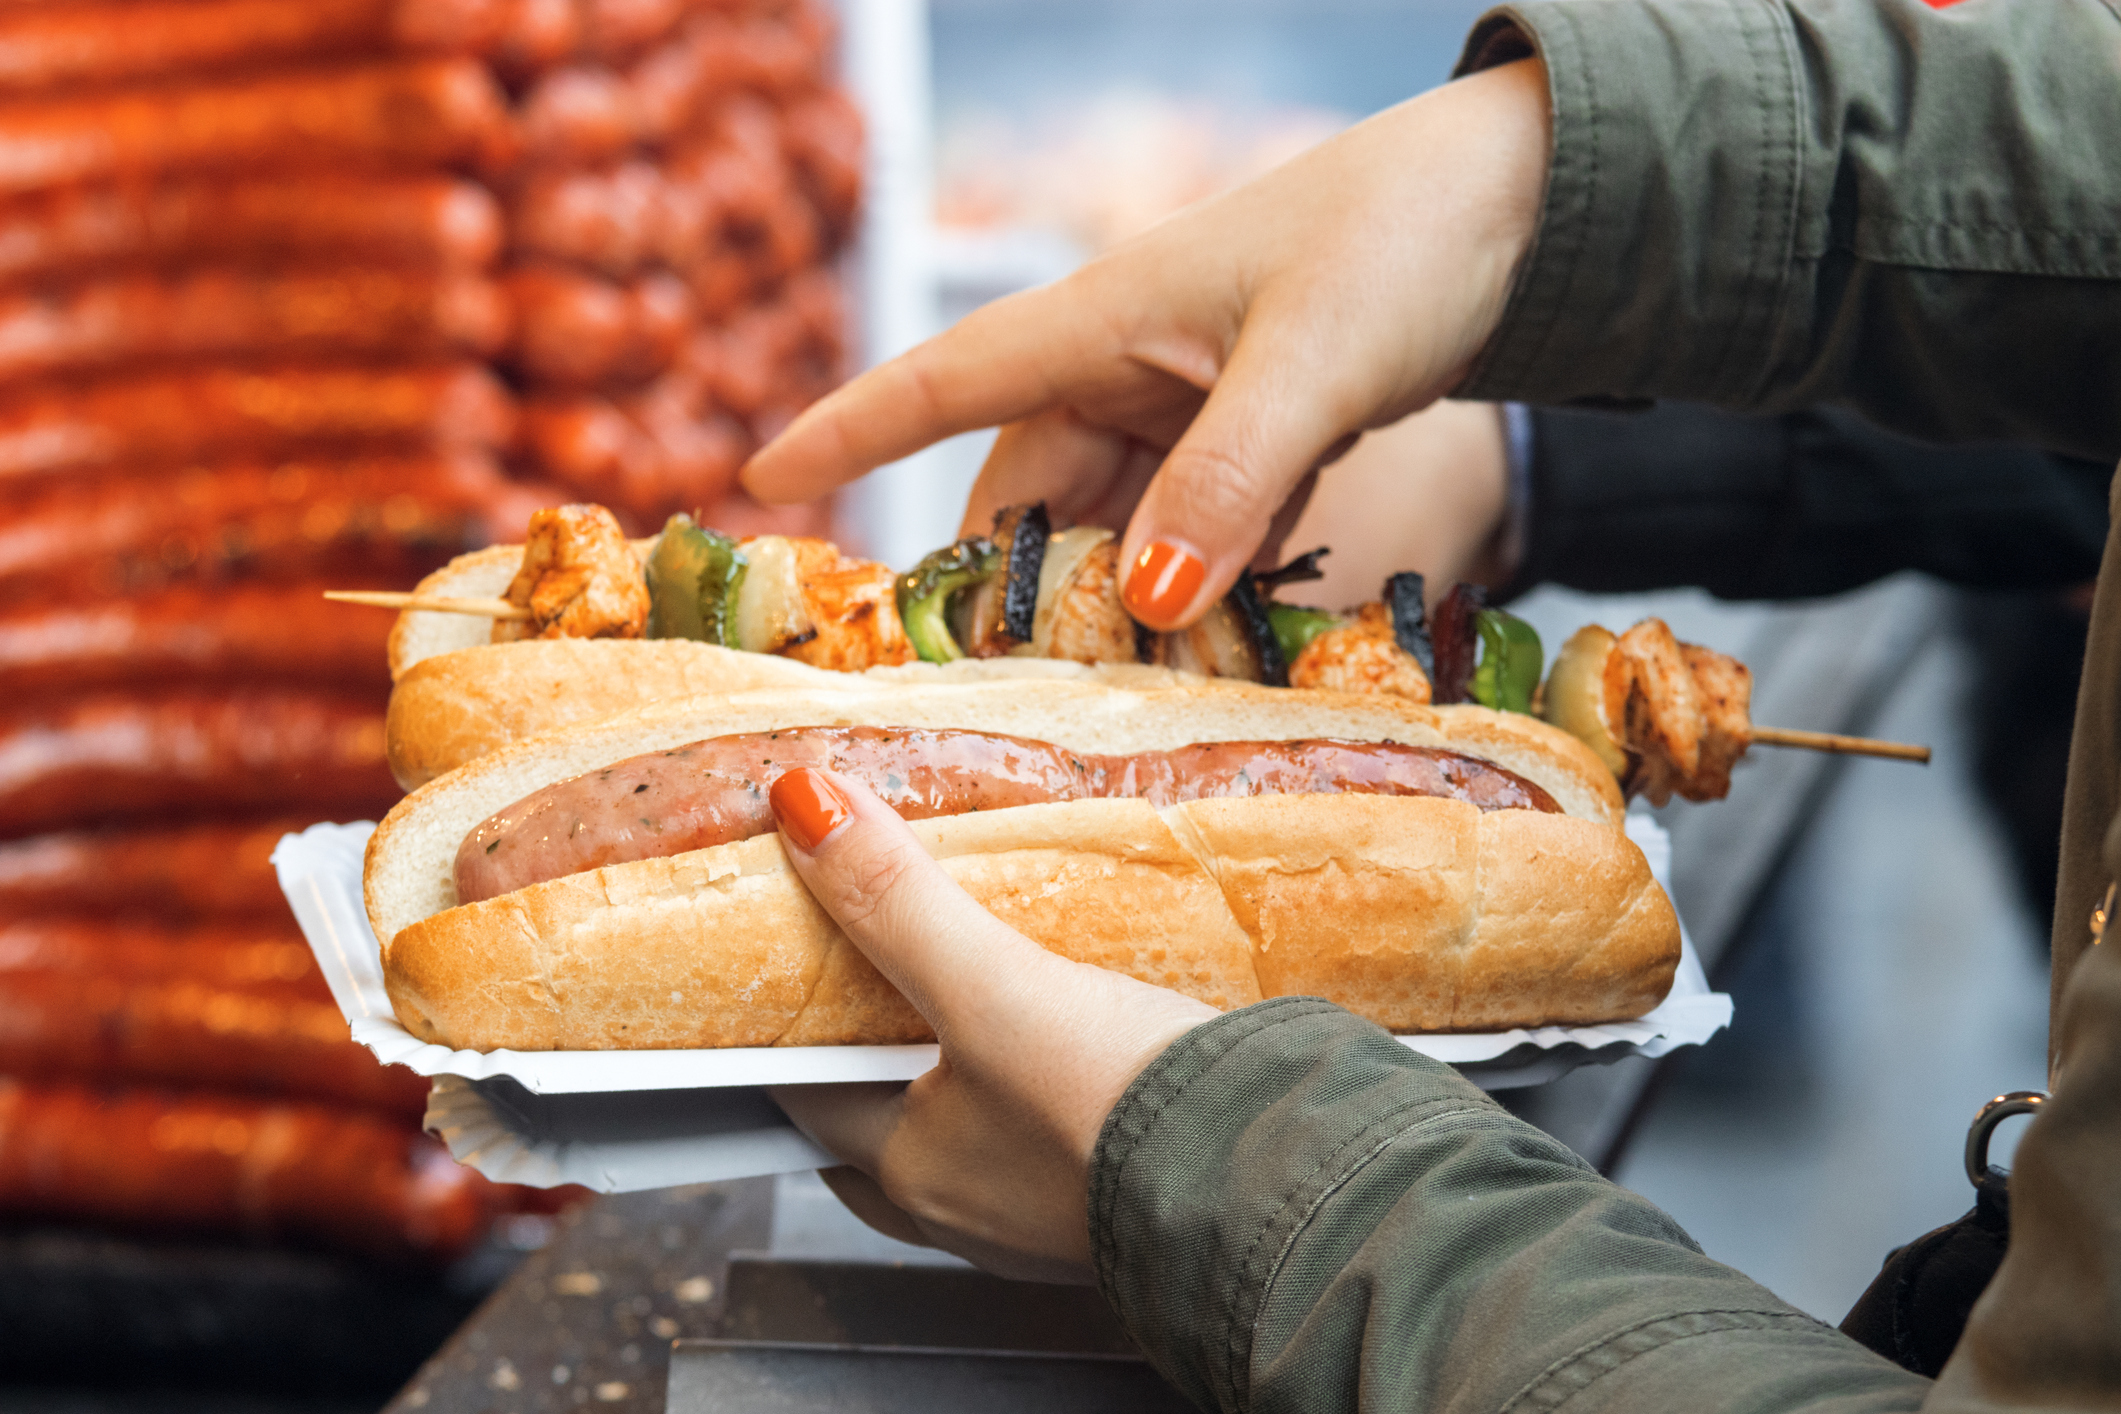 Woman bought her meal at Christmas street market. She holds paper tray in left hand, 2 breads on the tray, one with the sausage and  the other one with kebab skewer. Detail image, focus on 1st bread with sausage.